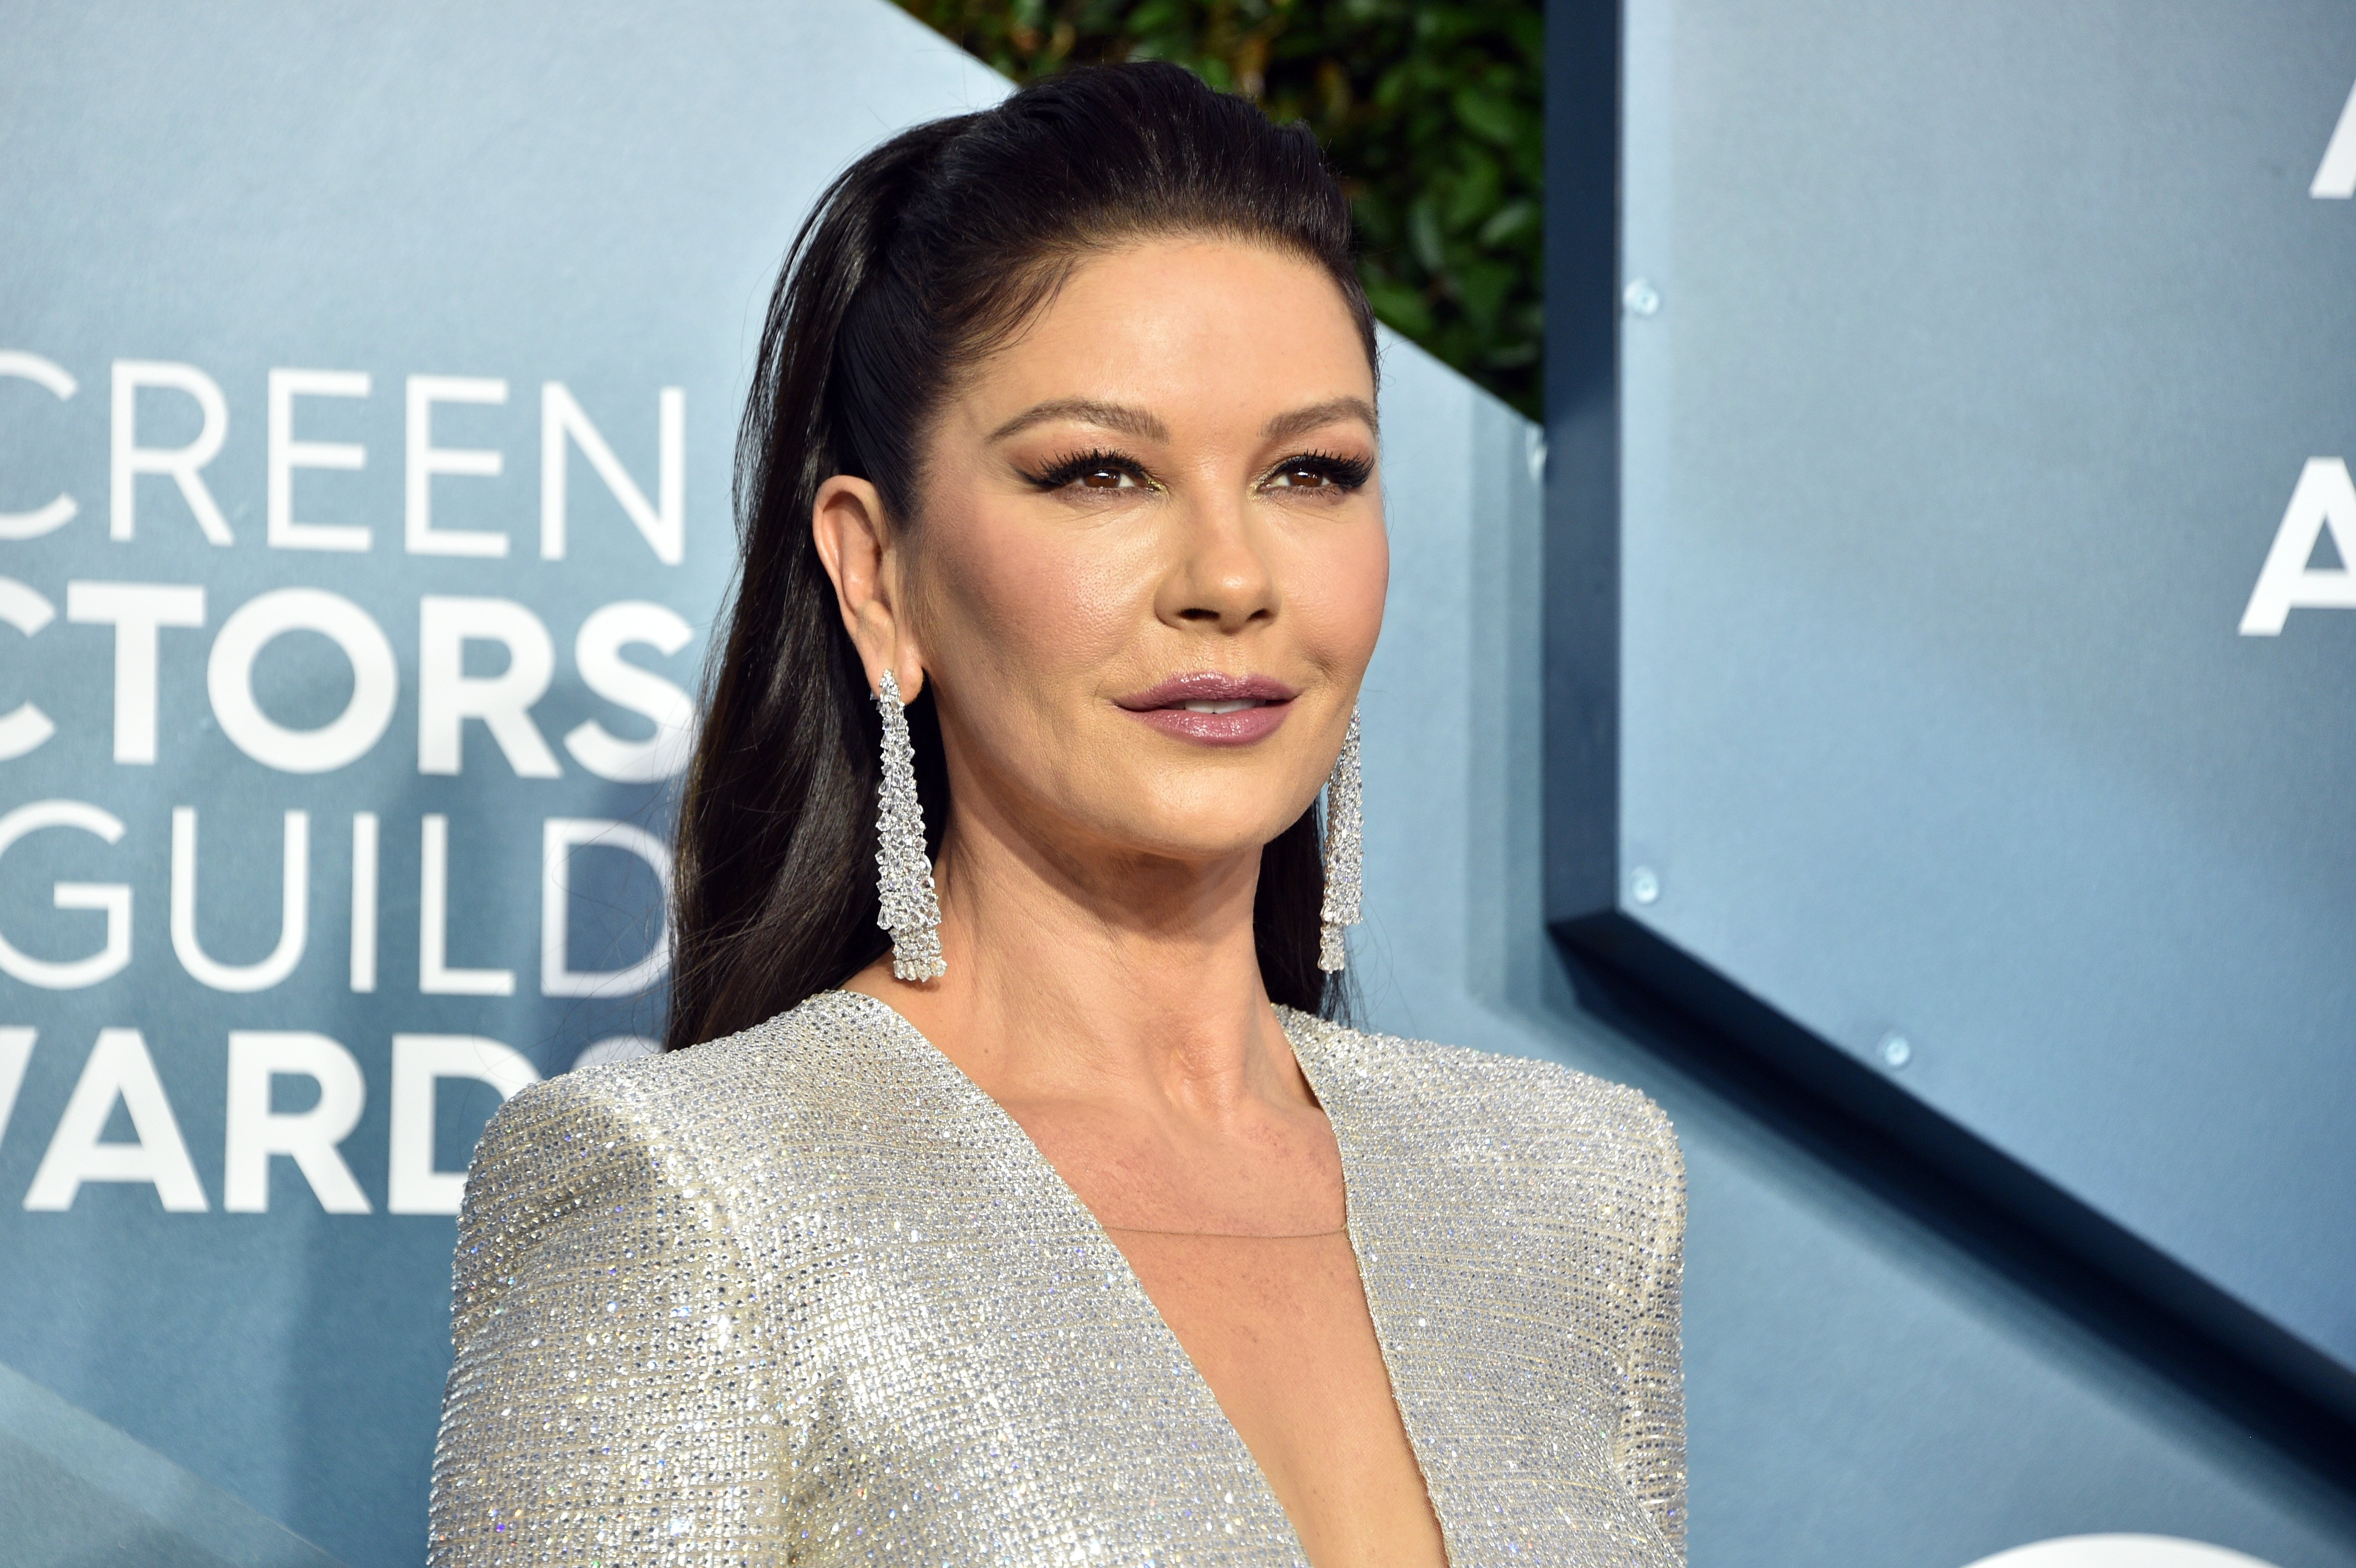 Catherine Zeta-Jones attends the 26th Annual Screen ActorsGuild Awards at The Shrine Auditorium on January 19, 2020 in Los Angeles, California | Photo: Getty Images